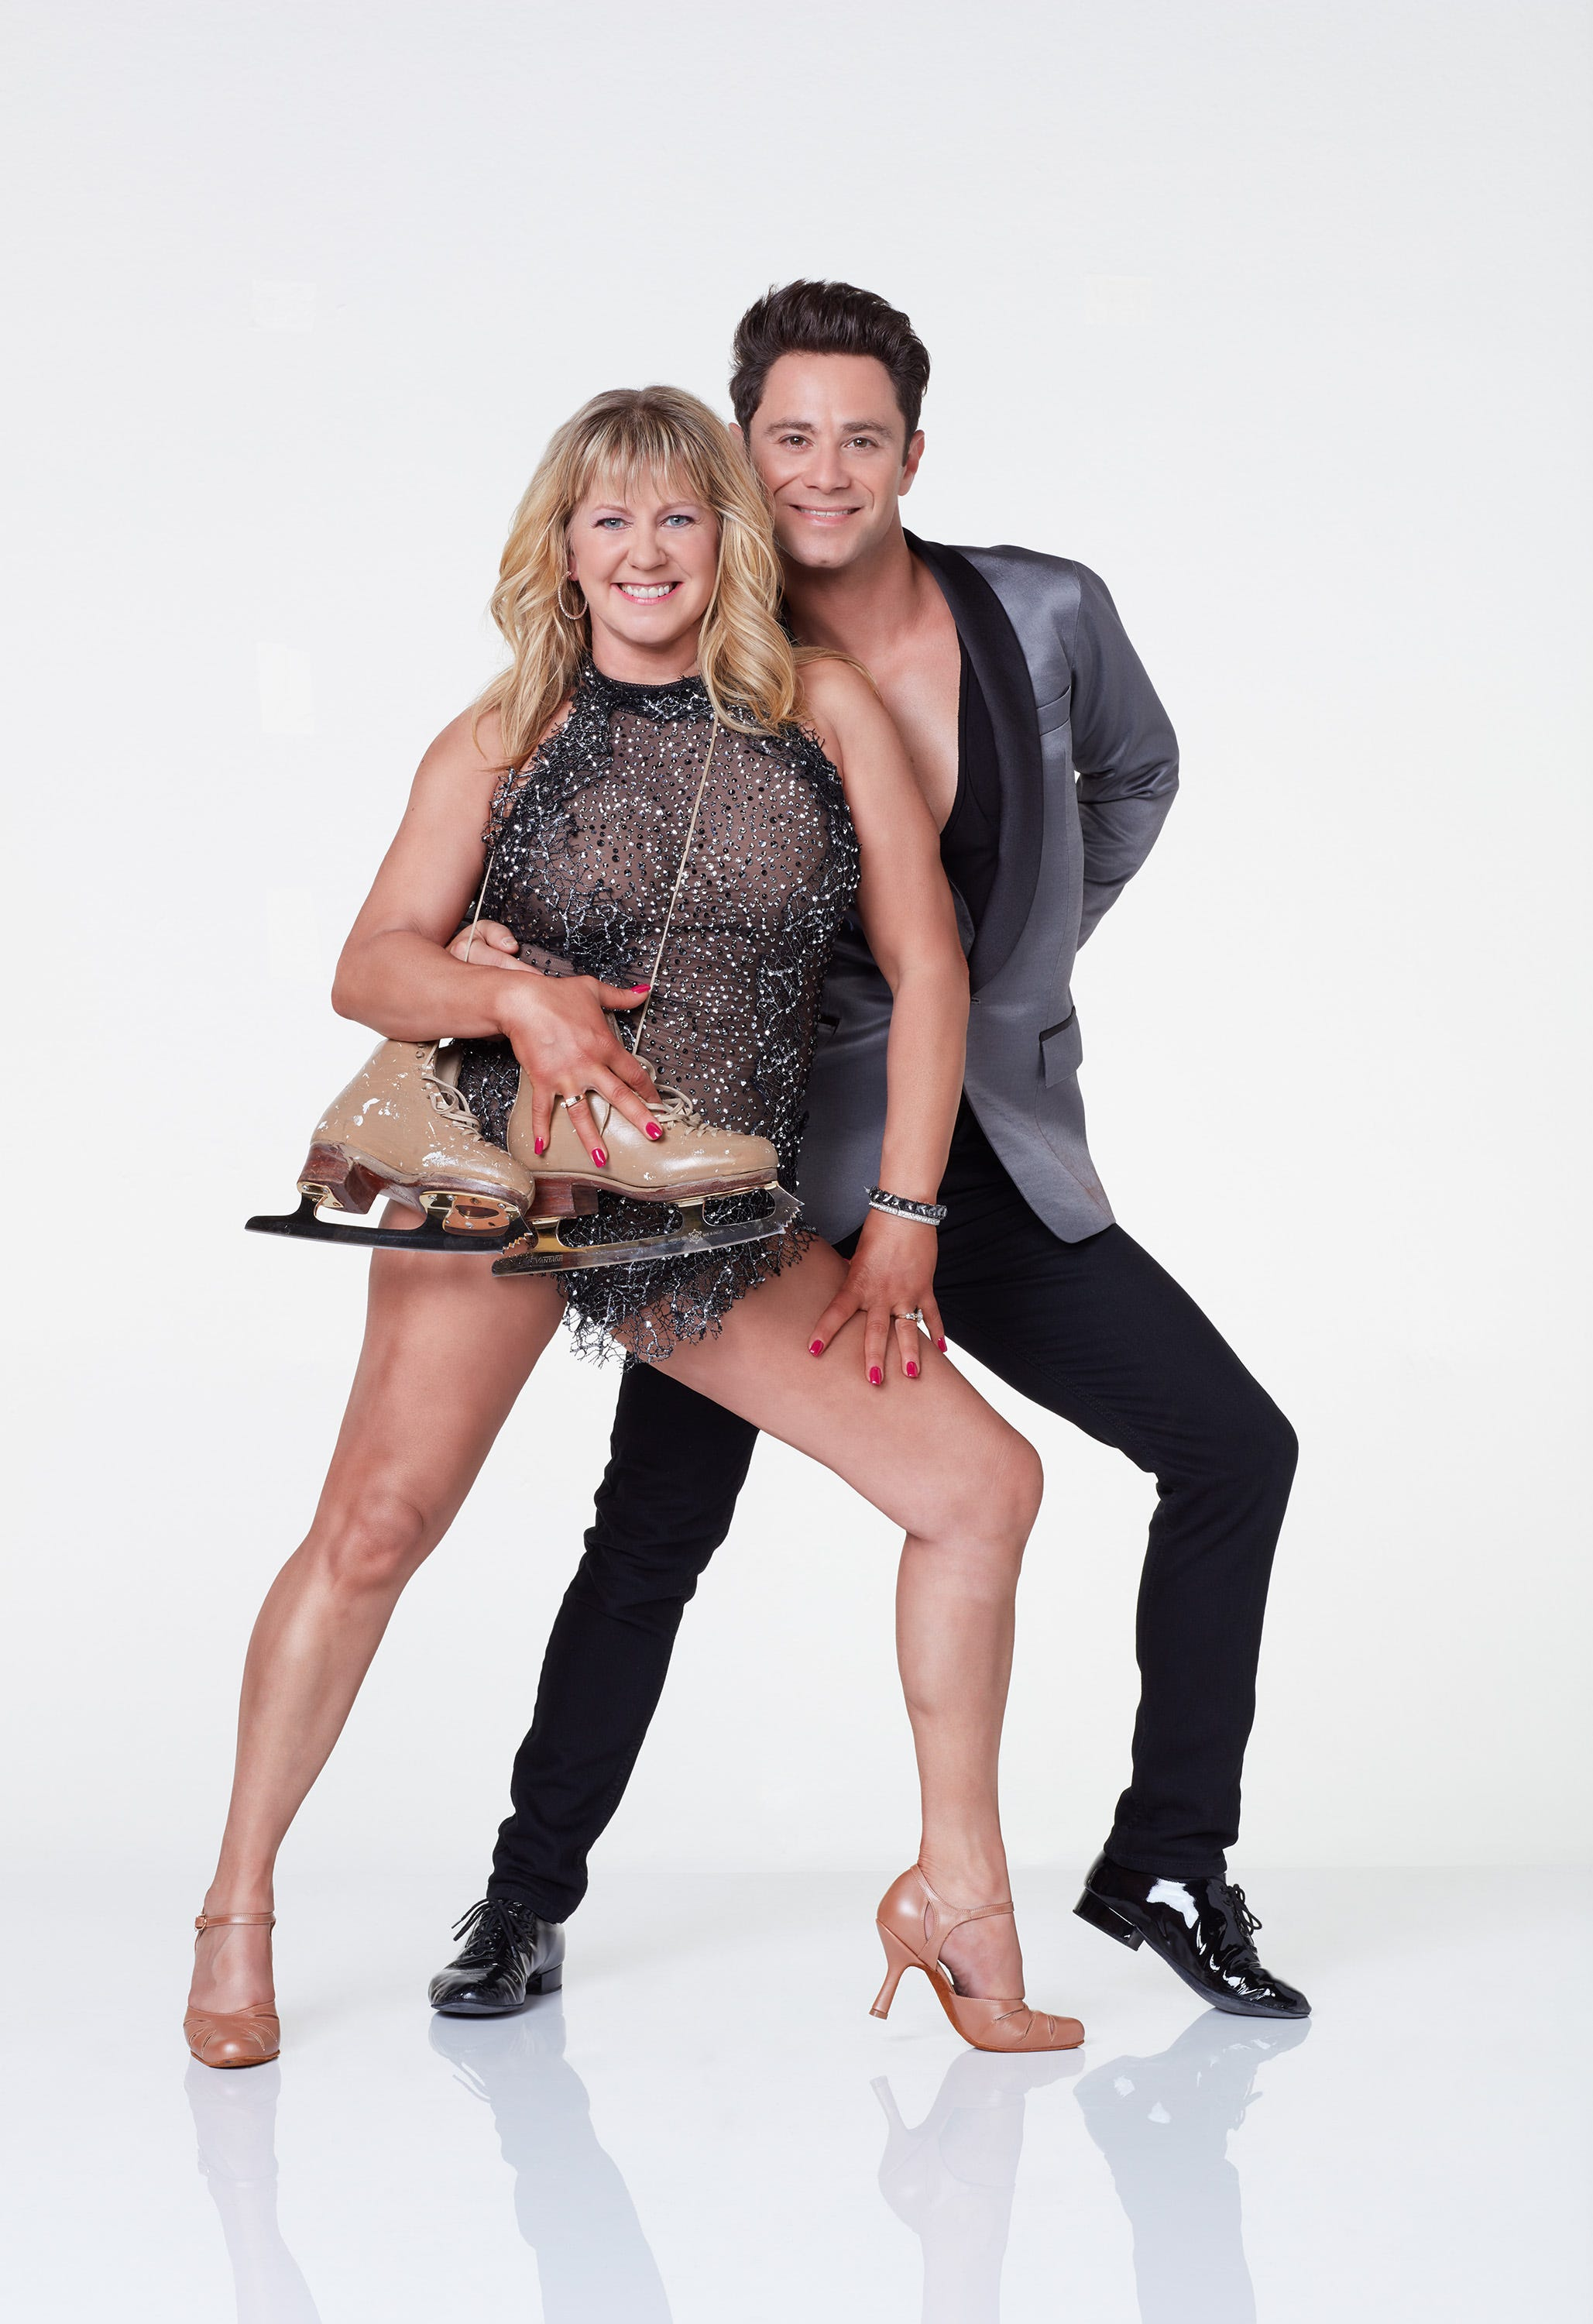 'Dancing With the Stars' athletes you'll love or hate, from Tonya Harding to Adam Rippon